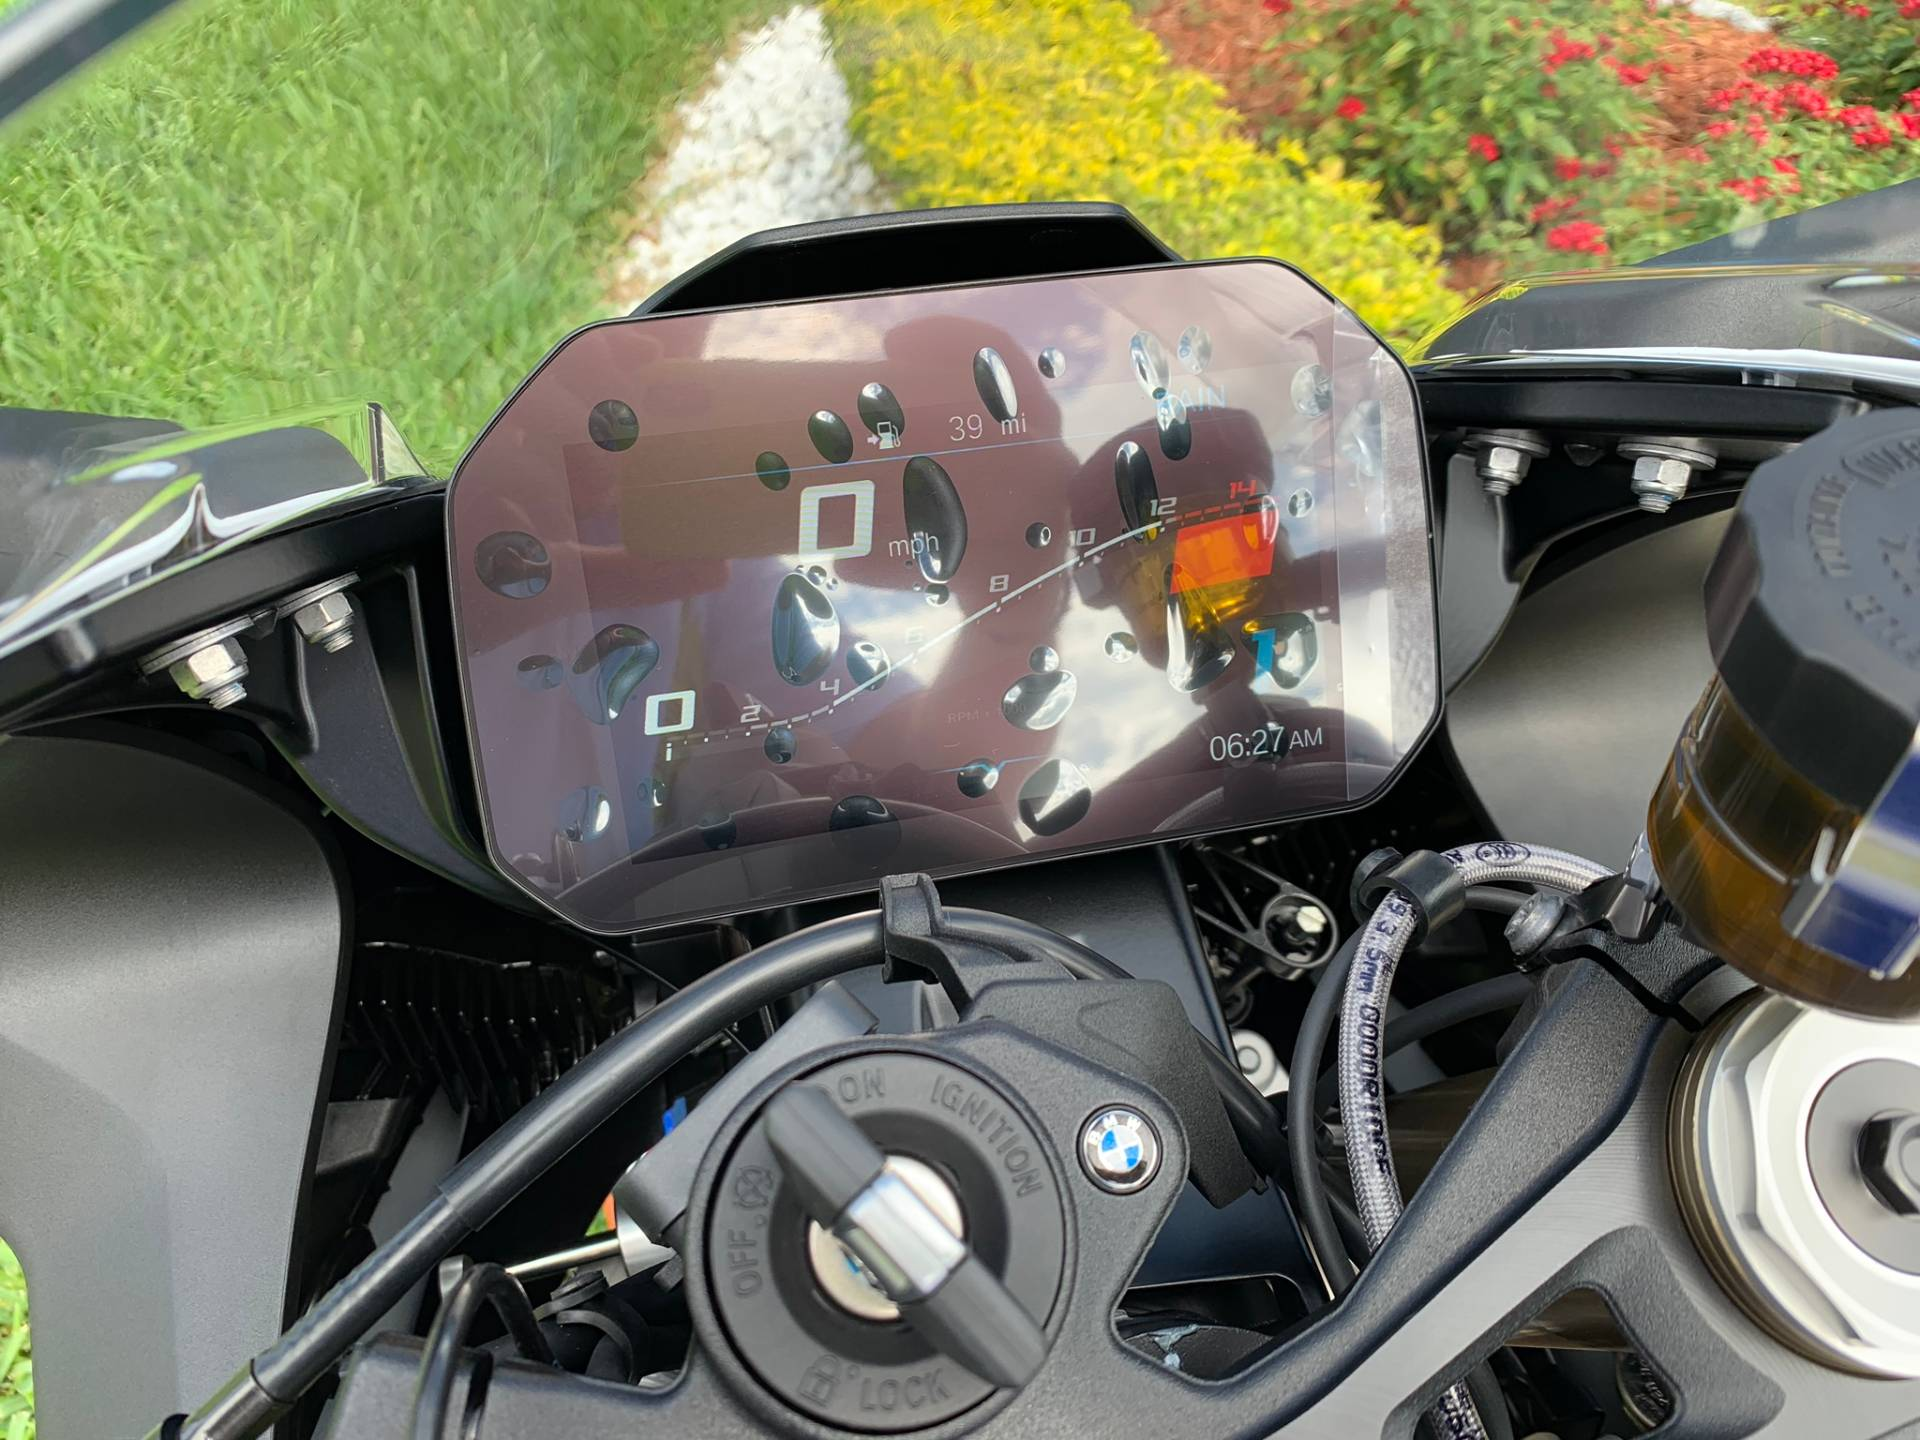 New 2020 BMW S 1000 RR for sale, BMW S 1000RR for sale, BMW Motorcycle S1000RR, new BMW RR, Sport. BMW Motorcycles of Miami, Motorcycles of Miami, Motorcycles Miami, New Motorcycles, Used Motorcycles, pre-owned. #BMWMotorcyclesOfMiami #MotorcyclesOfMiami #MotorcyclesMiami - Photo 14